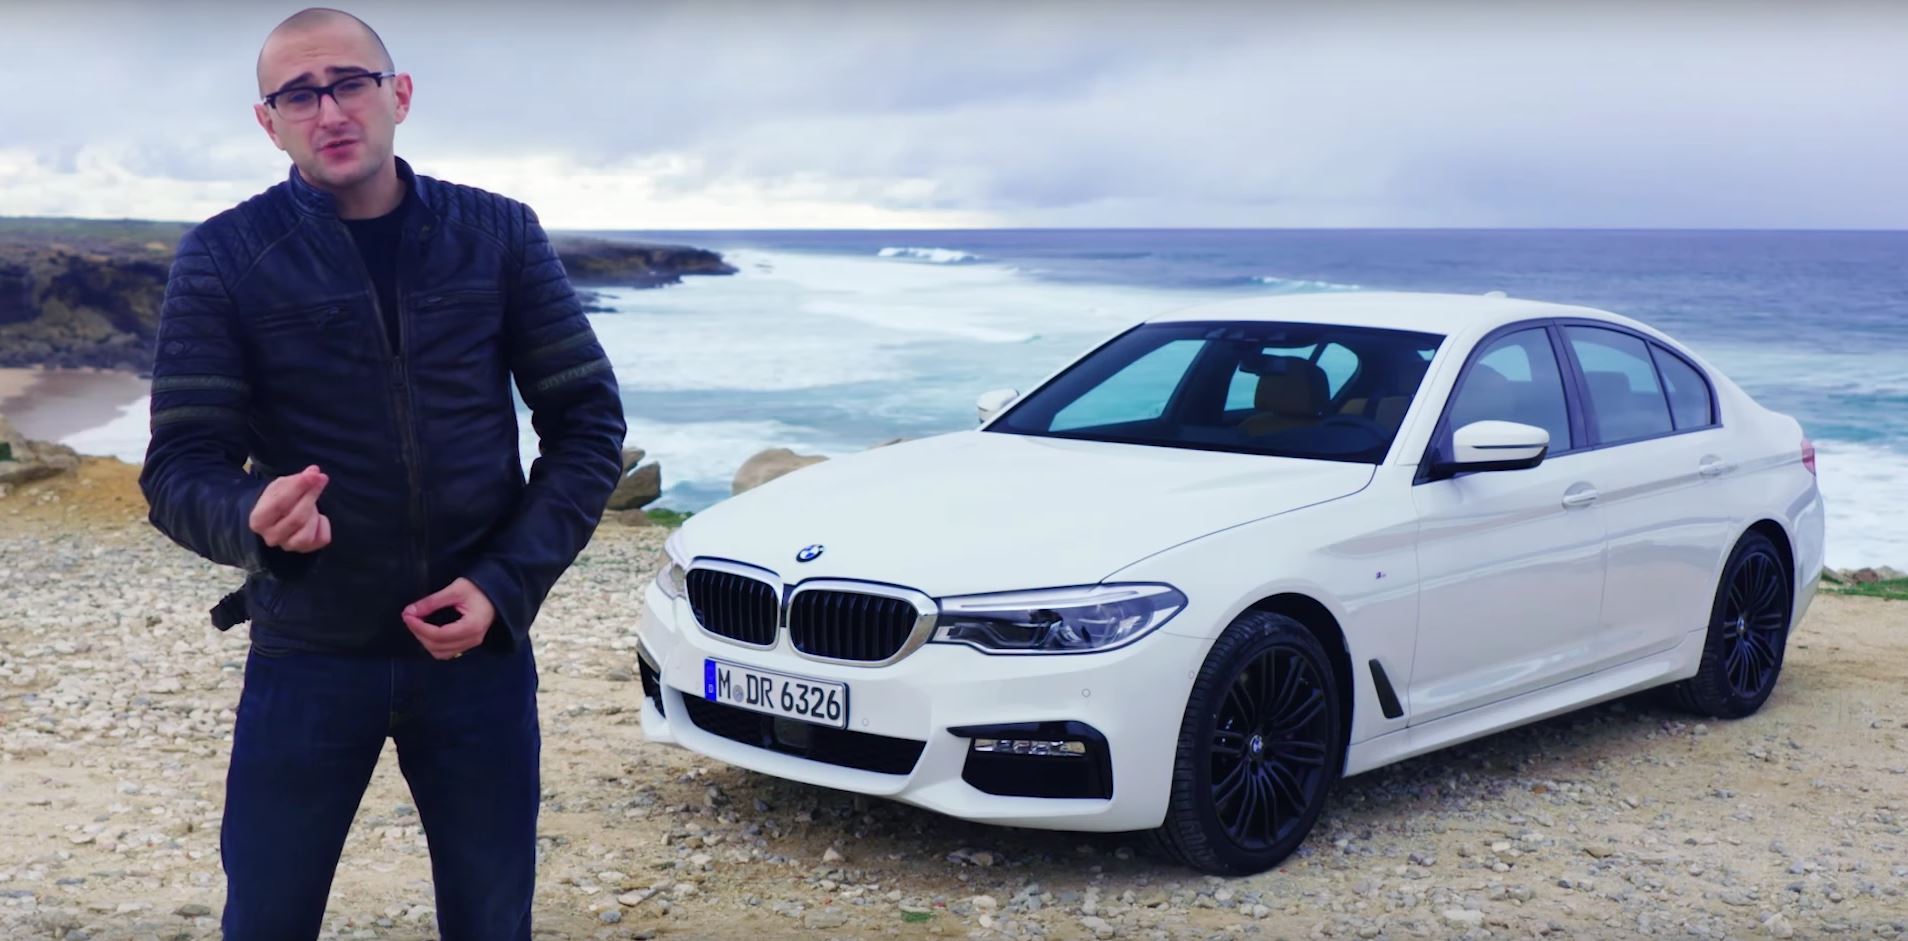 All-New BMW 540i Tested by Carfection: More Silent and Planted Than